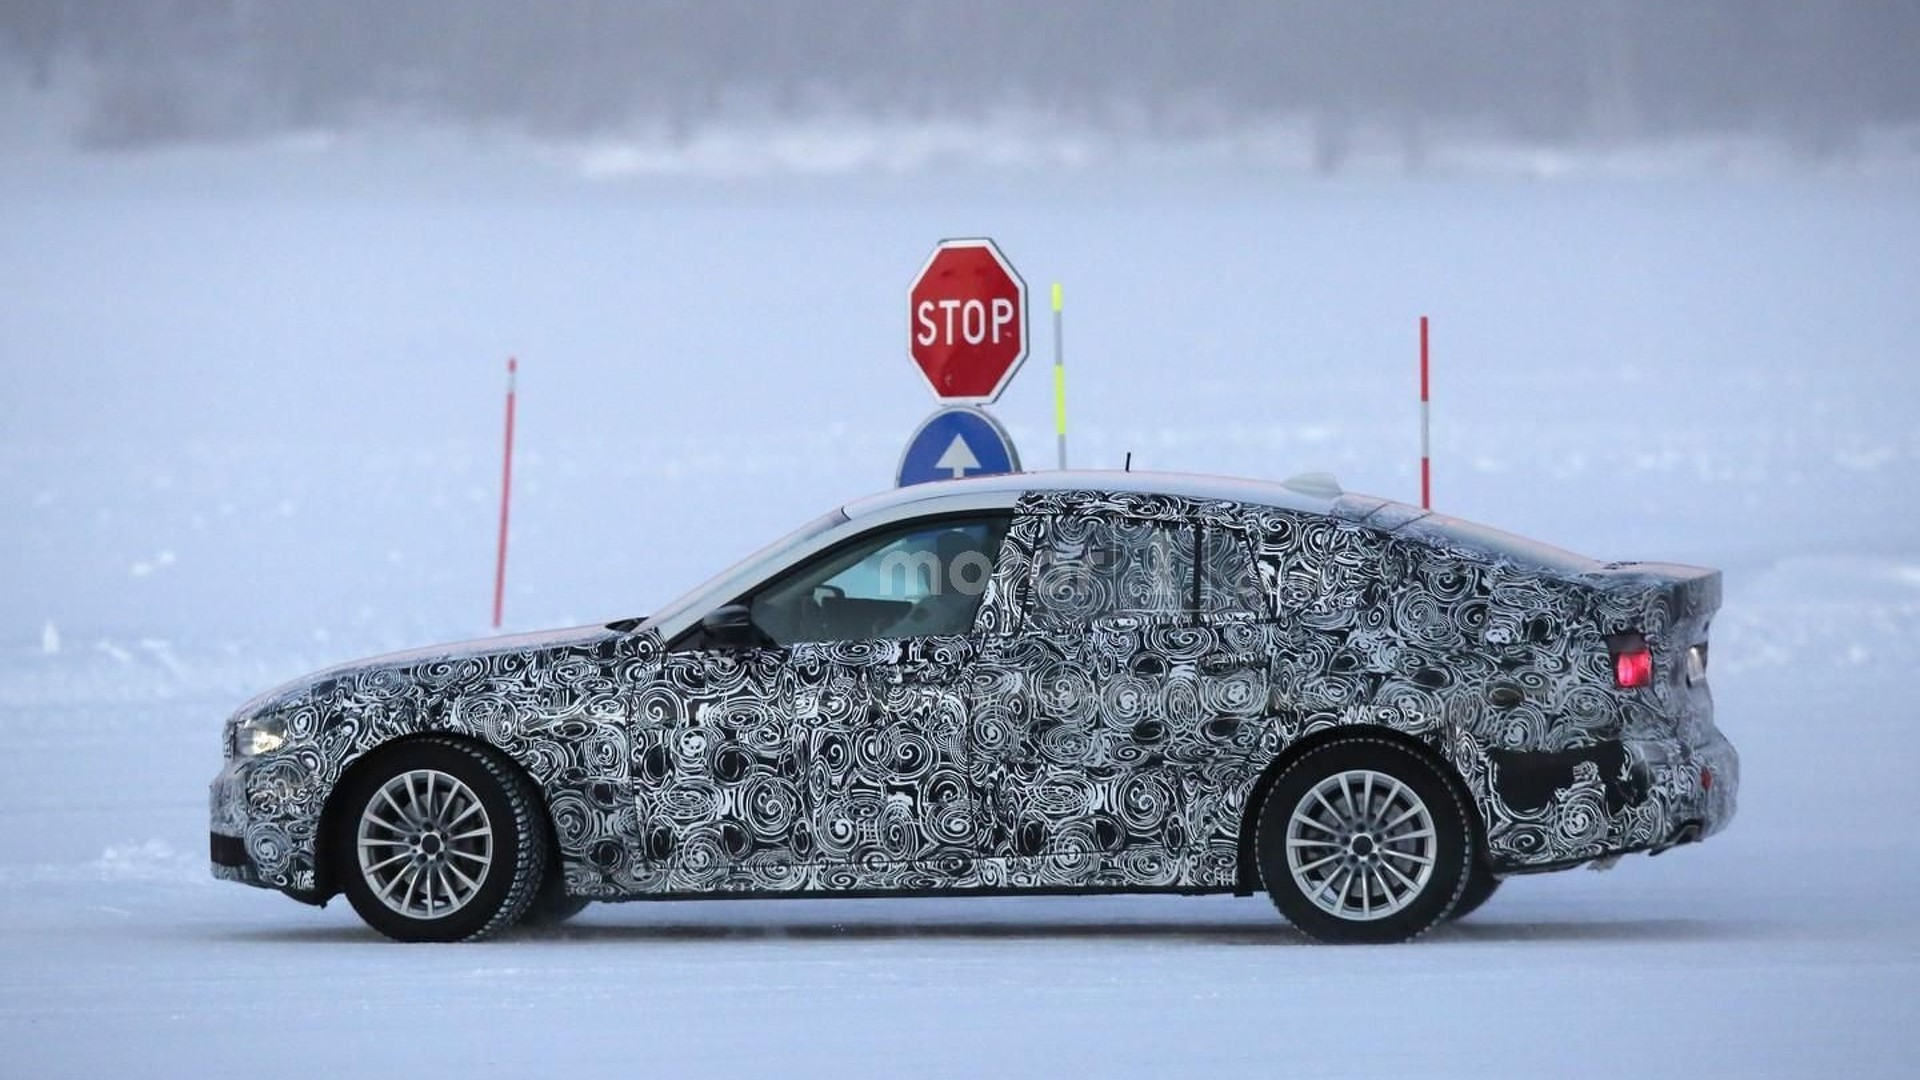 Spy pics remind us bmw is preparing new 5 series gt - Images remind us s ...